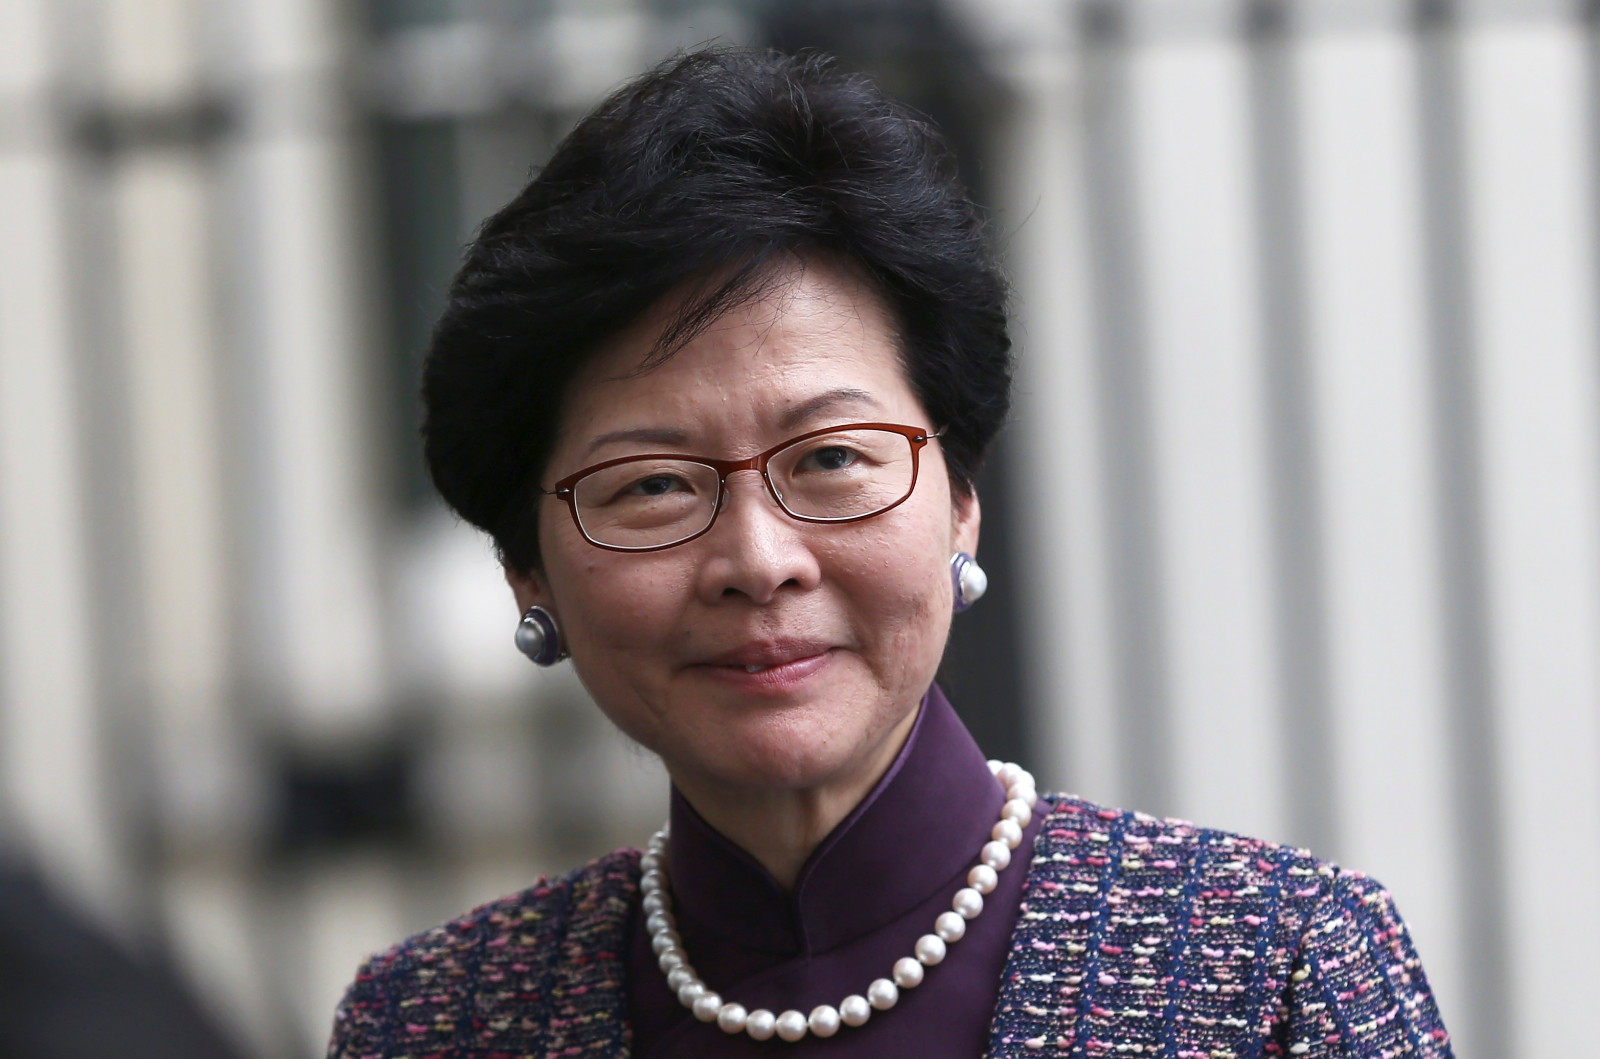 Hong Kong: Chief Secretary for Administration, Carrie Lam, resigns